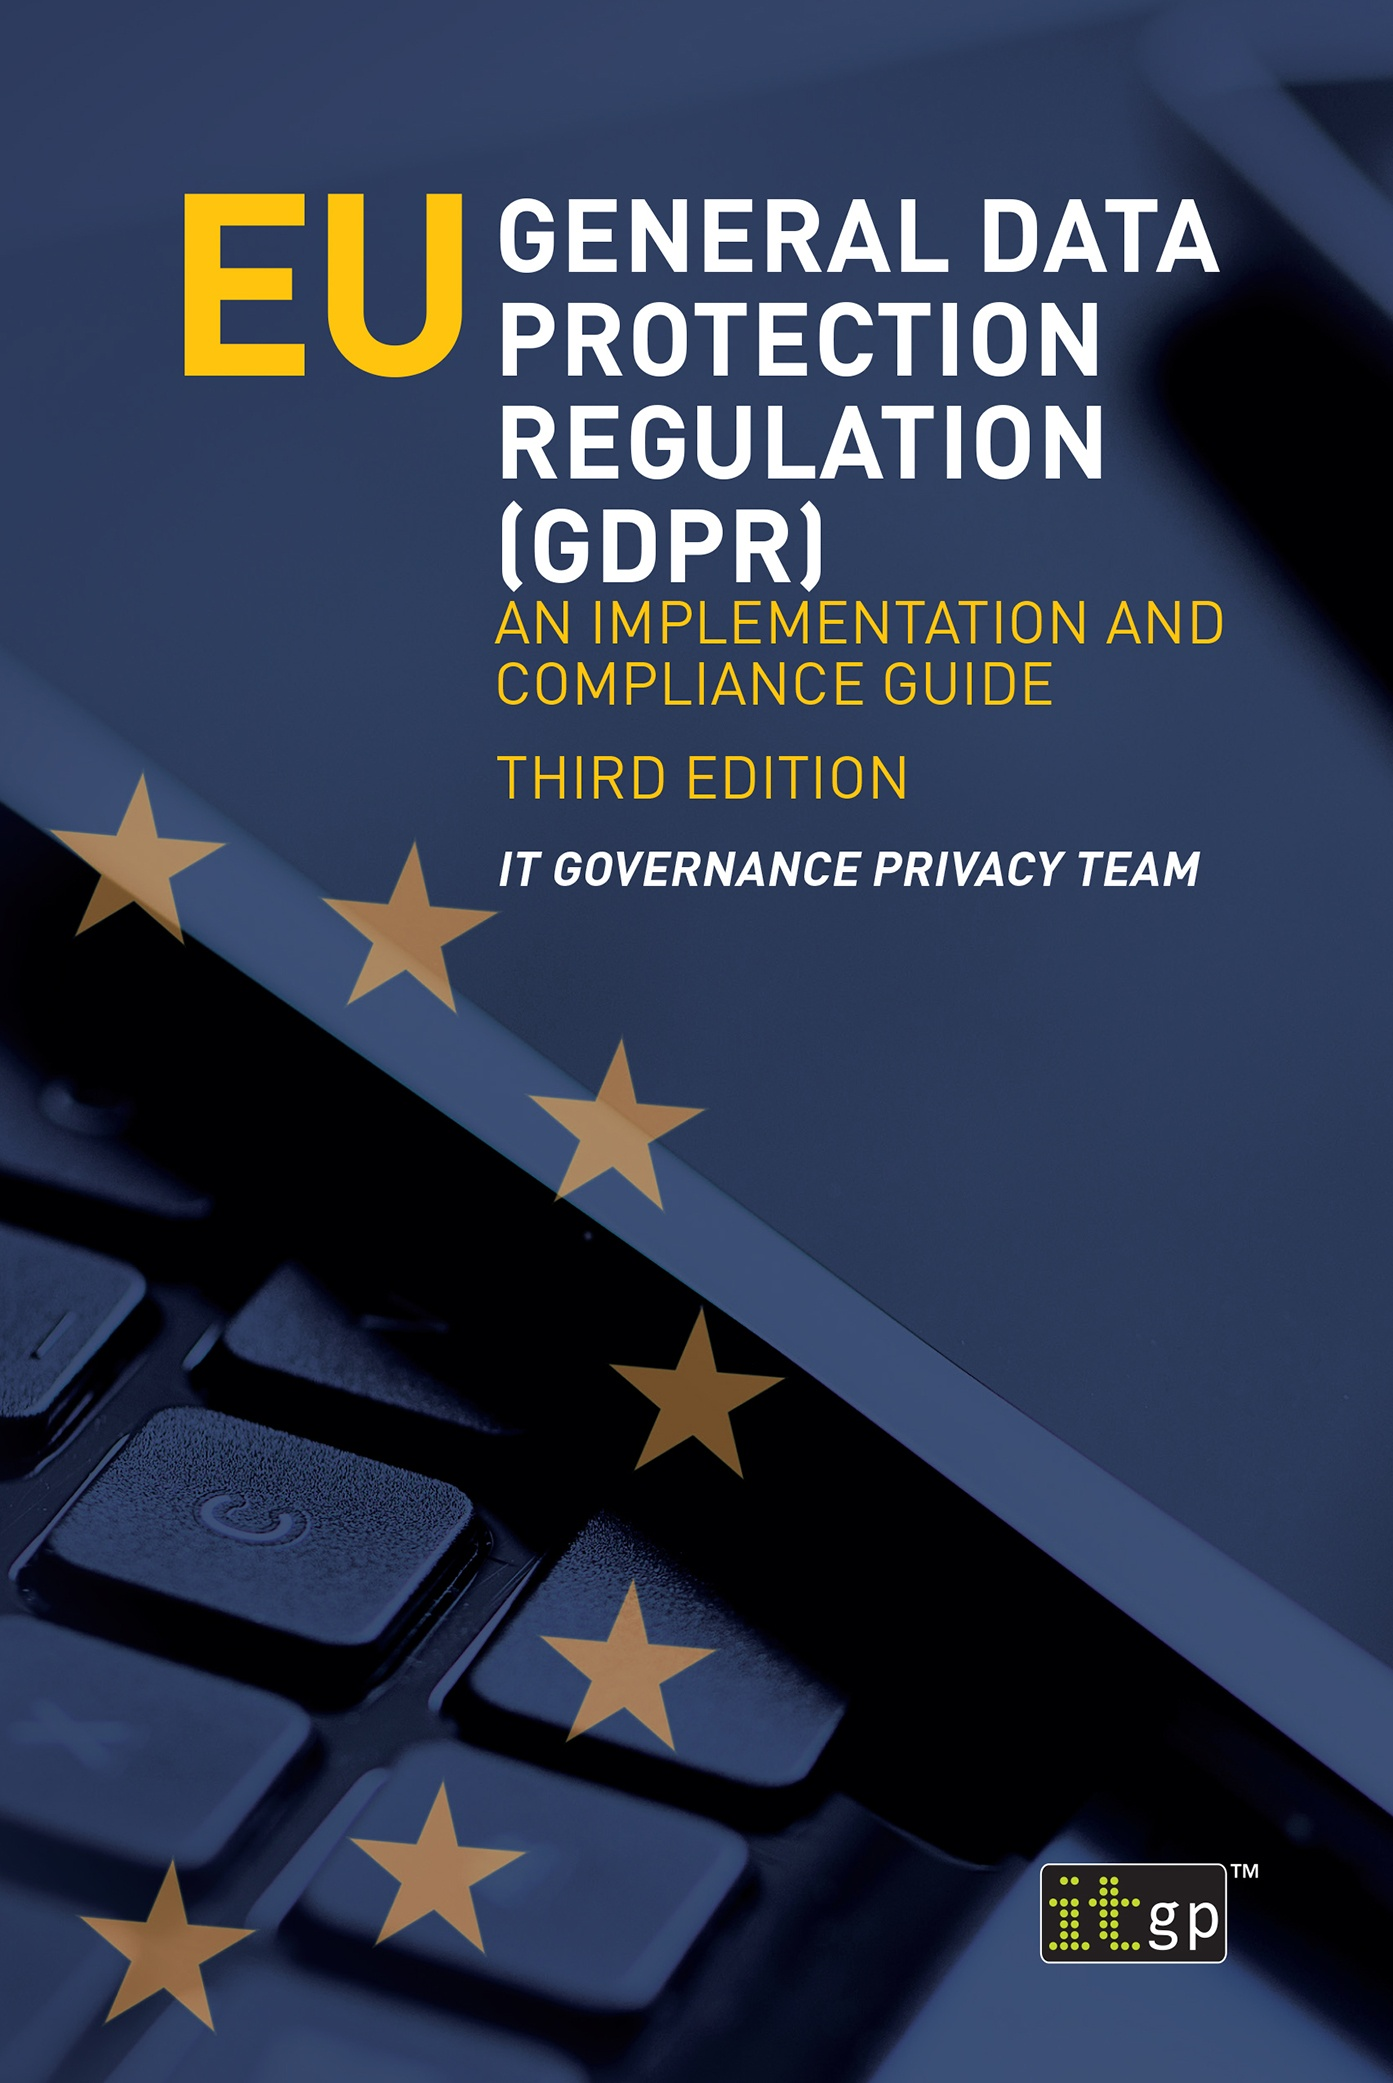 EU General Data Protection Regulation (GDPR), third edition